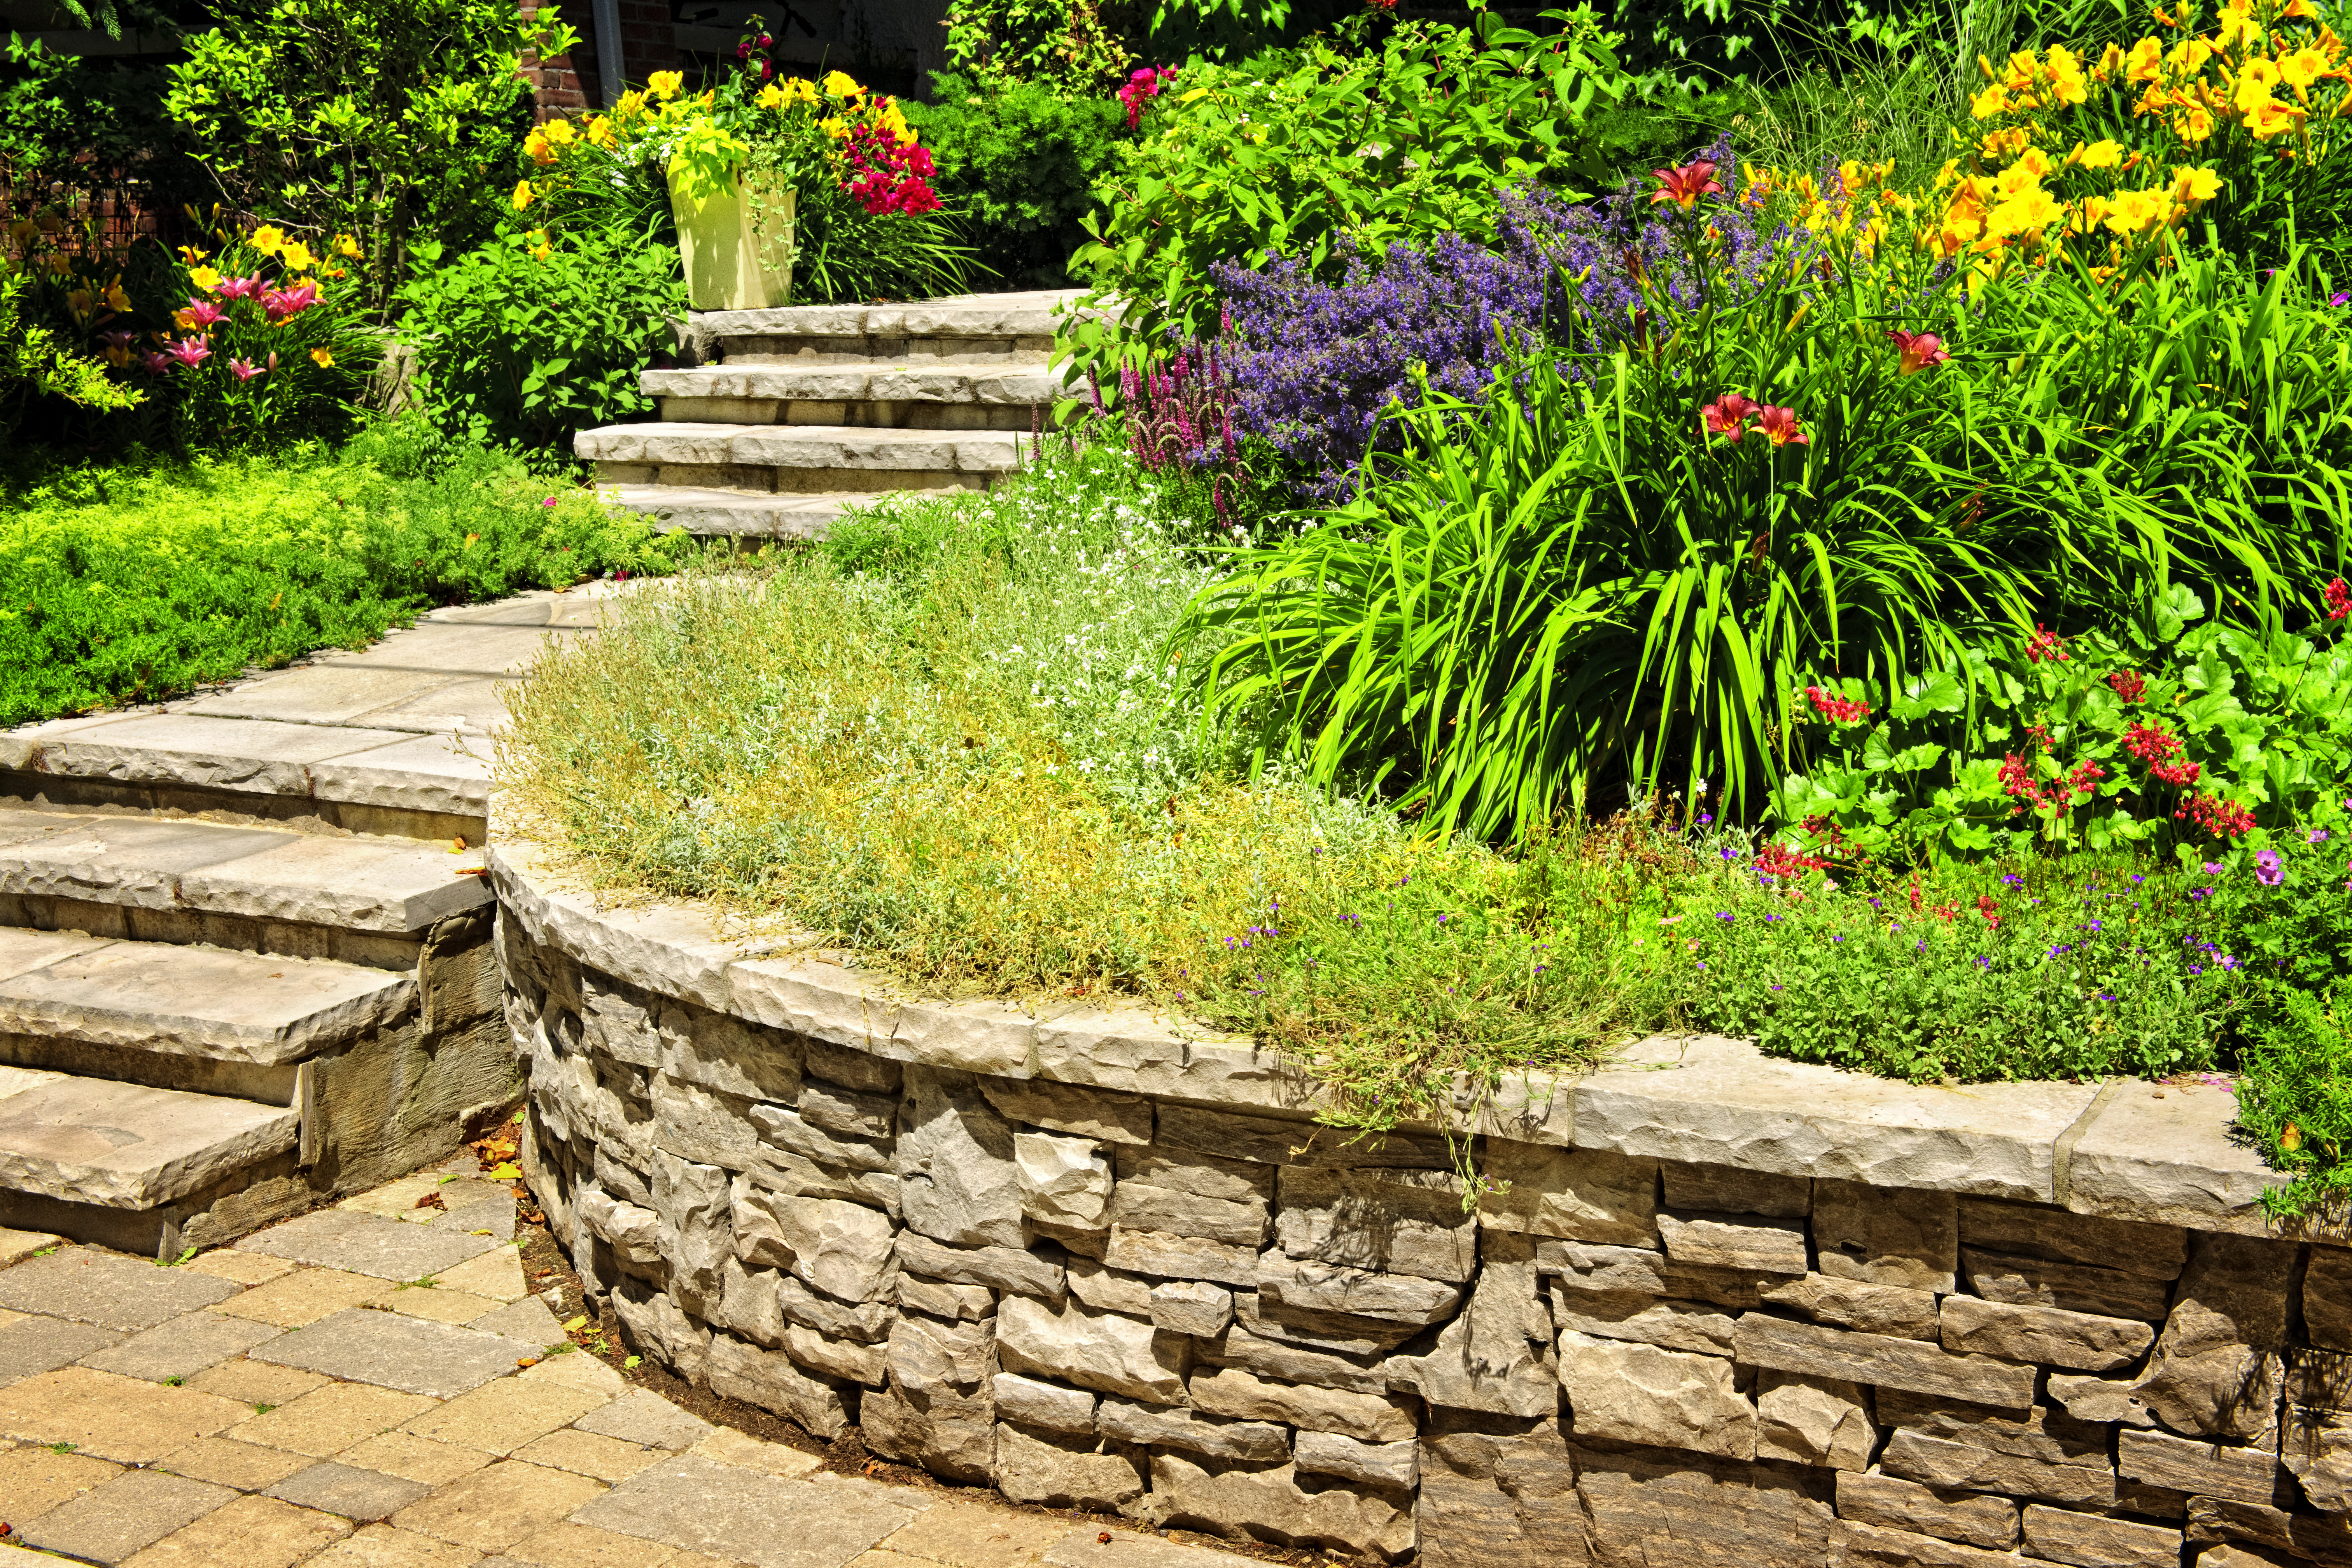 Natural,Stone,Landscaping,In,Home,Garden,With,Stairs,And,Retaining